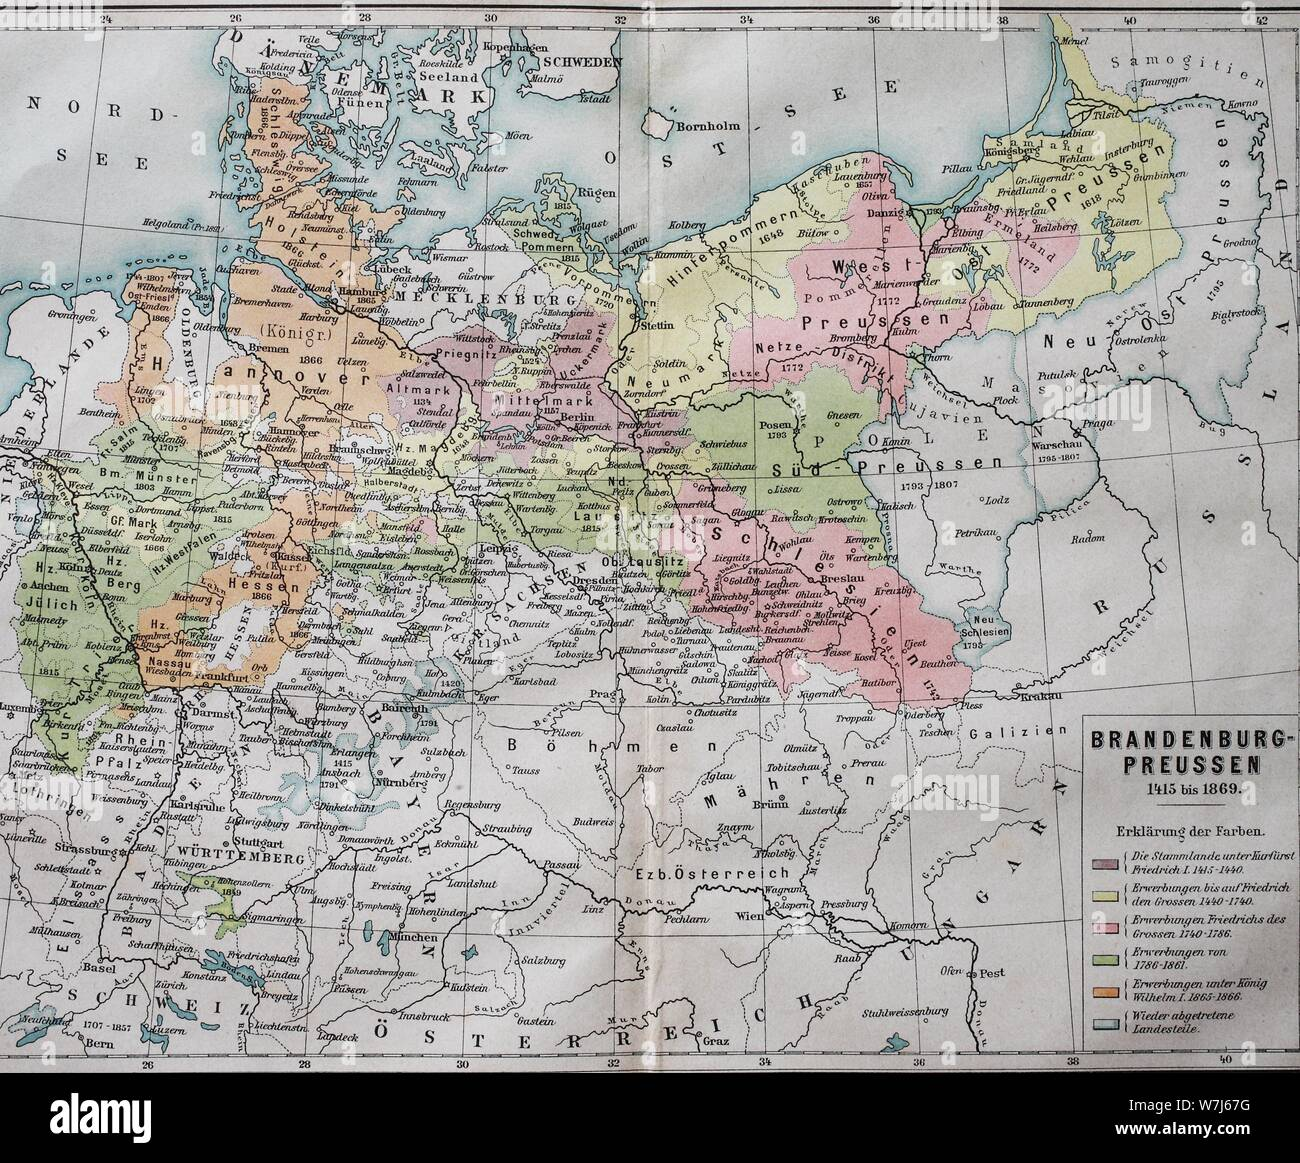 Map, Brandenburg-Prussia from 1415-1869, historical